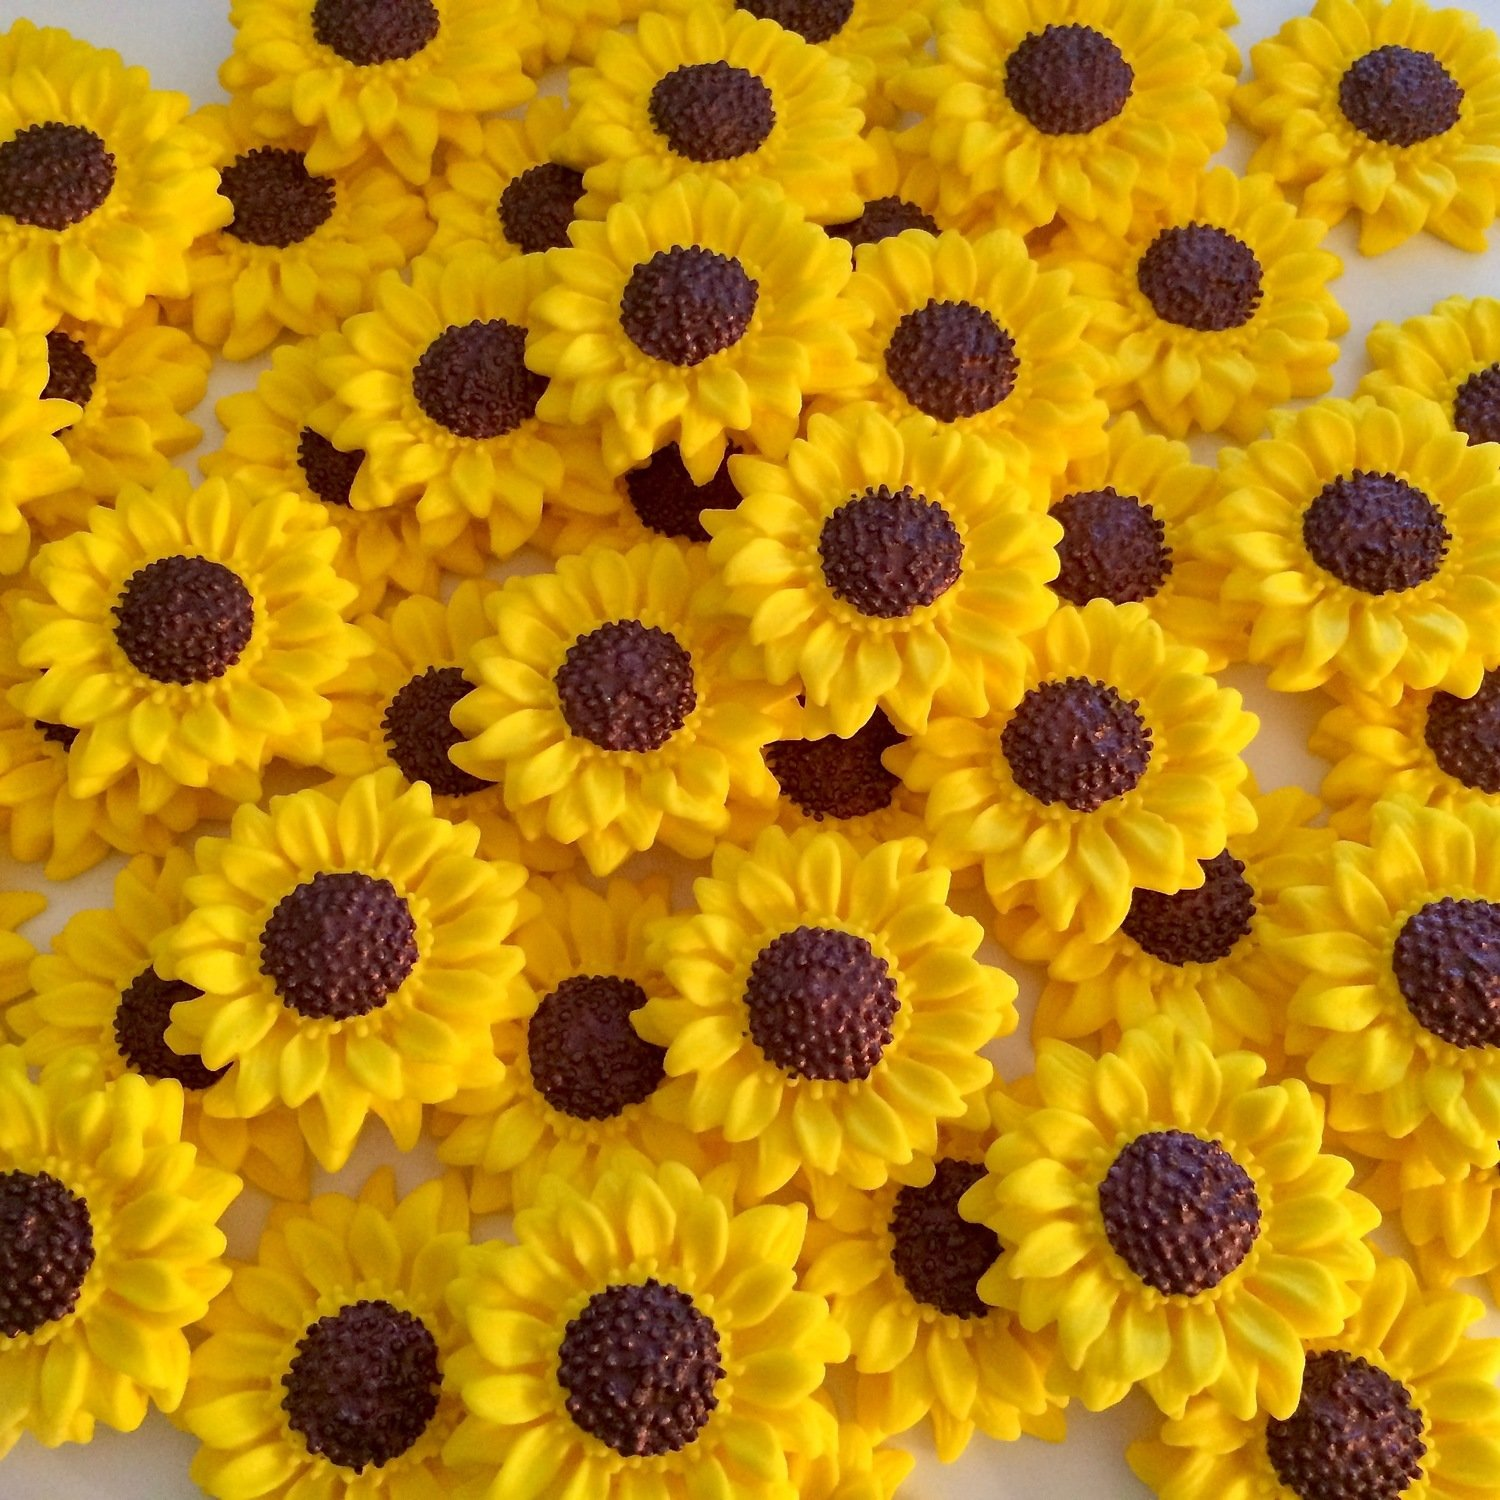 Yellow Sunflowers